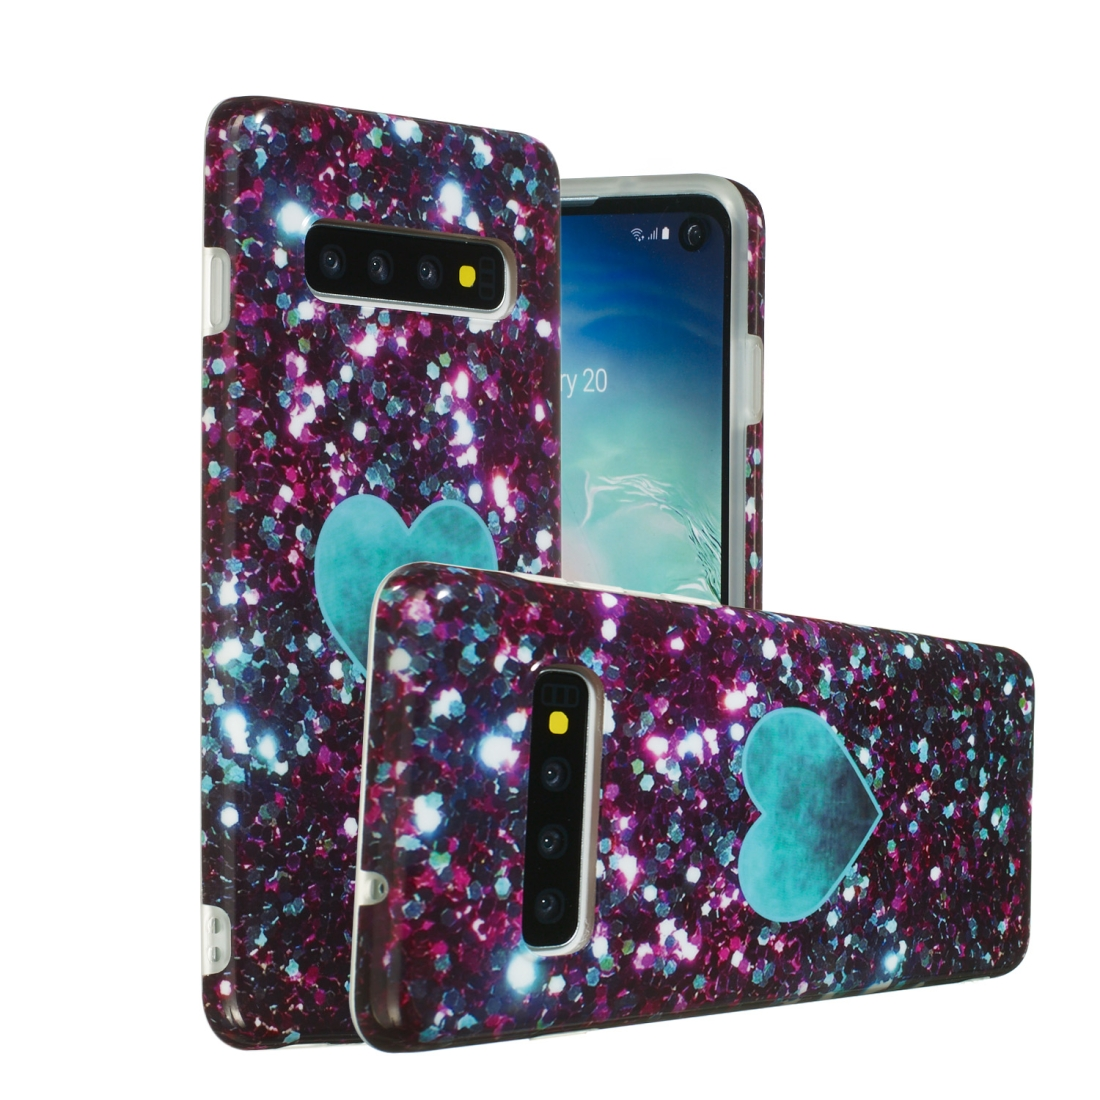 TPU Protective Case For Galaxy S10 Plus (Green Heart)